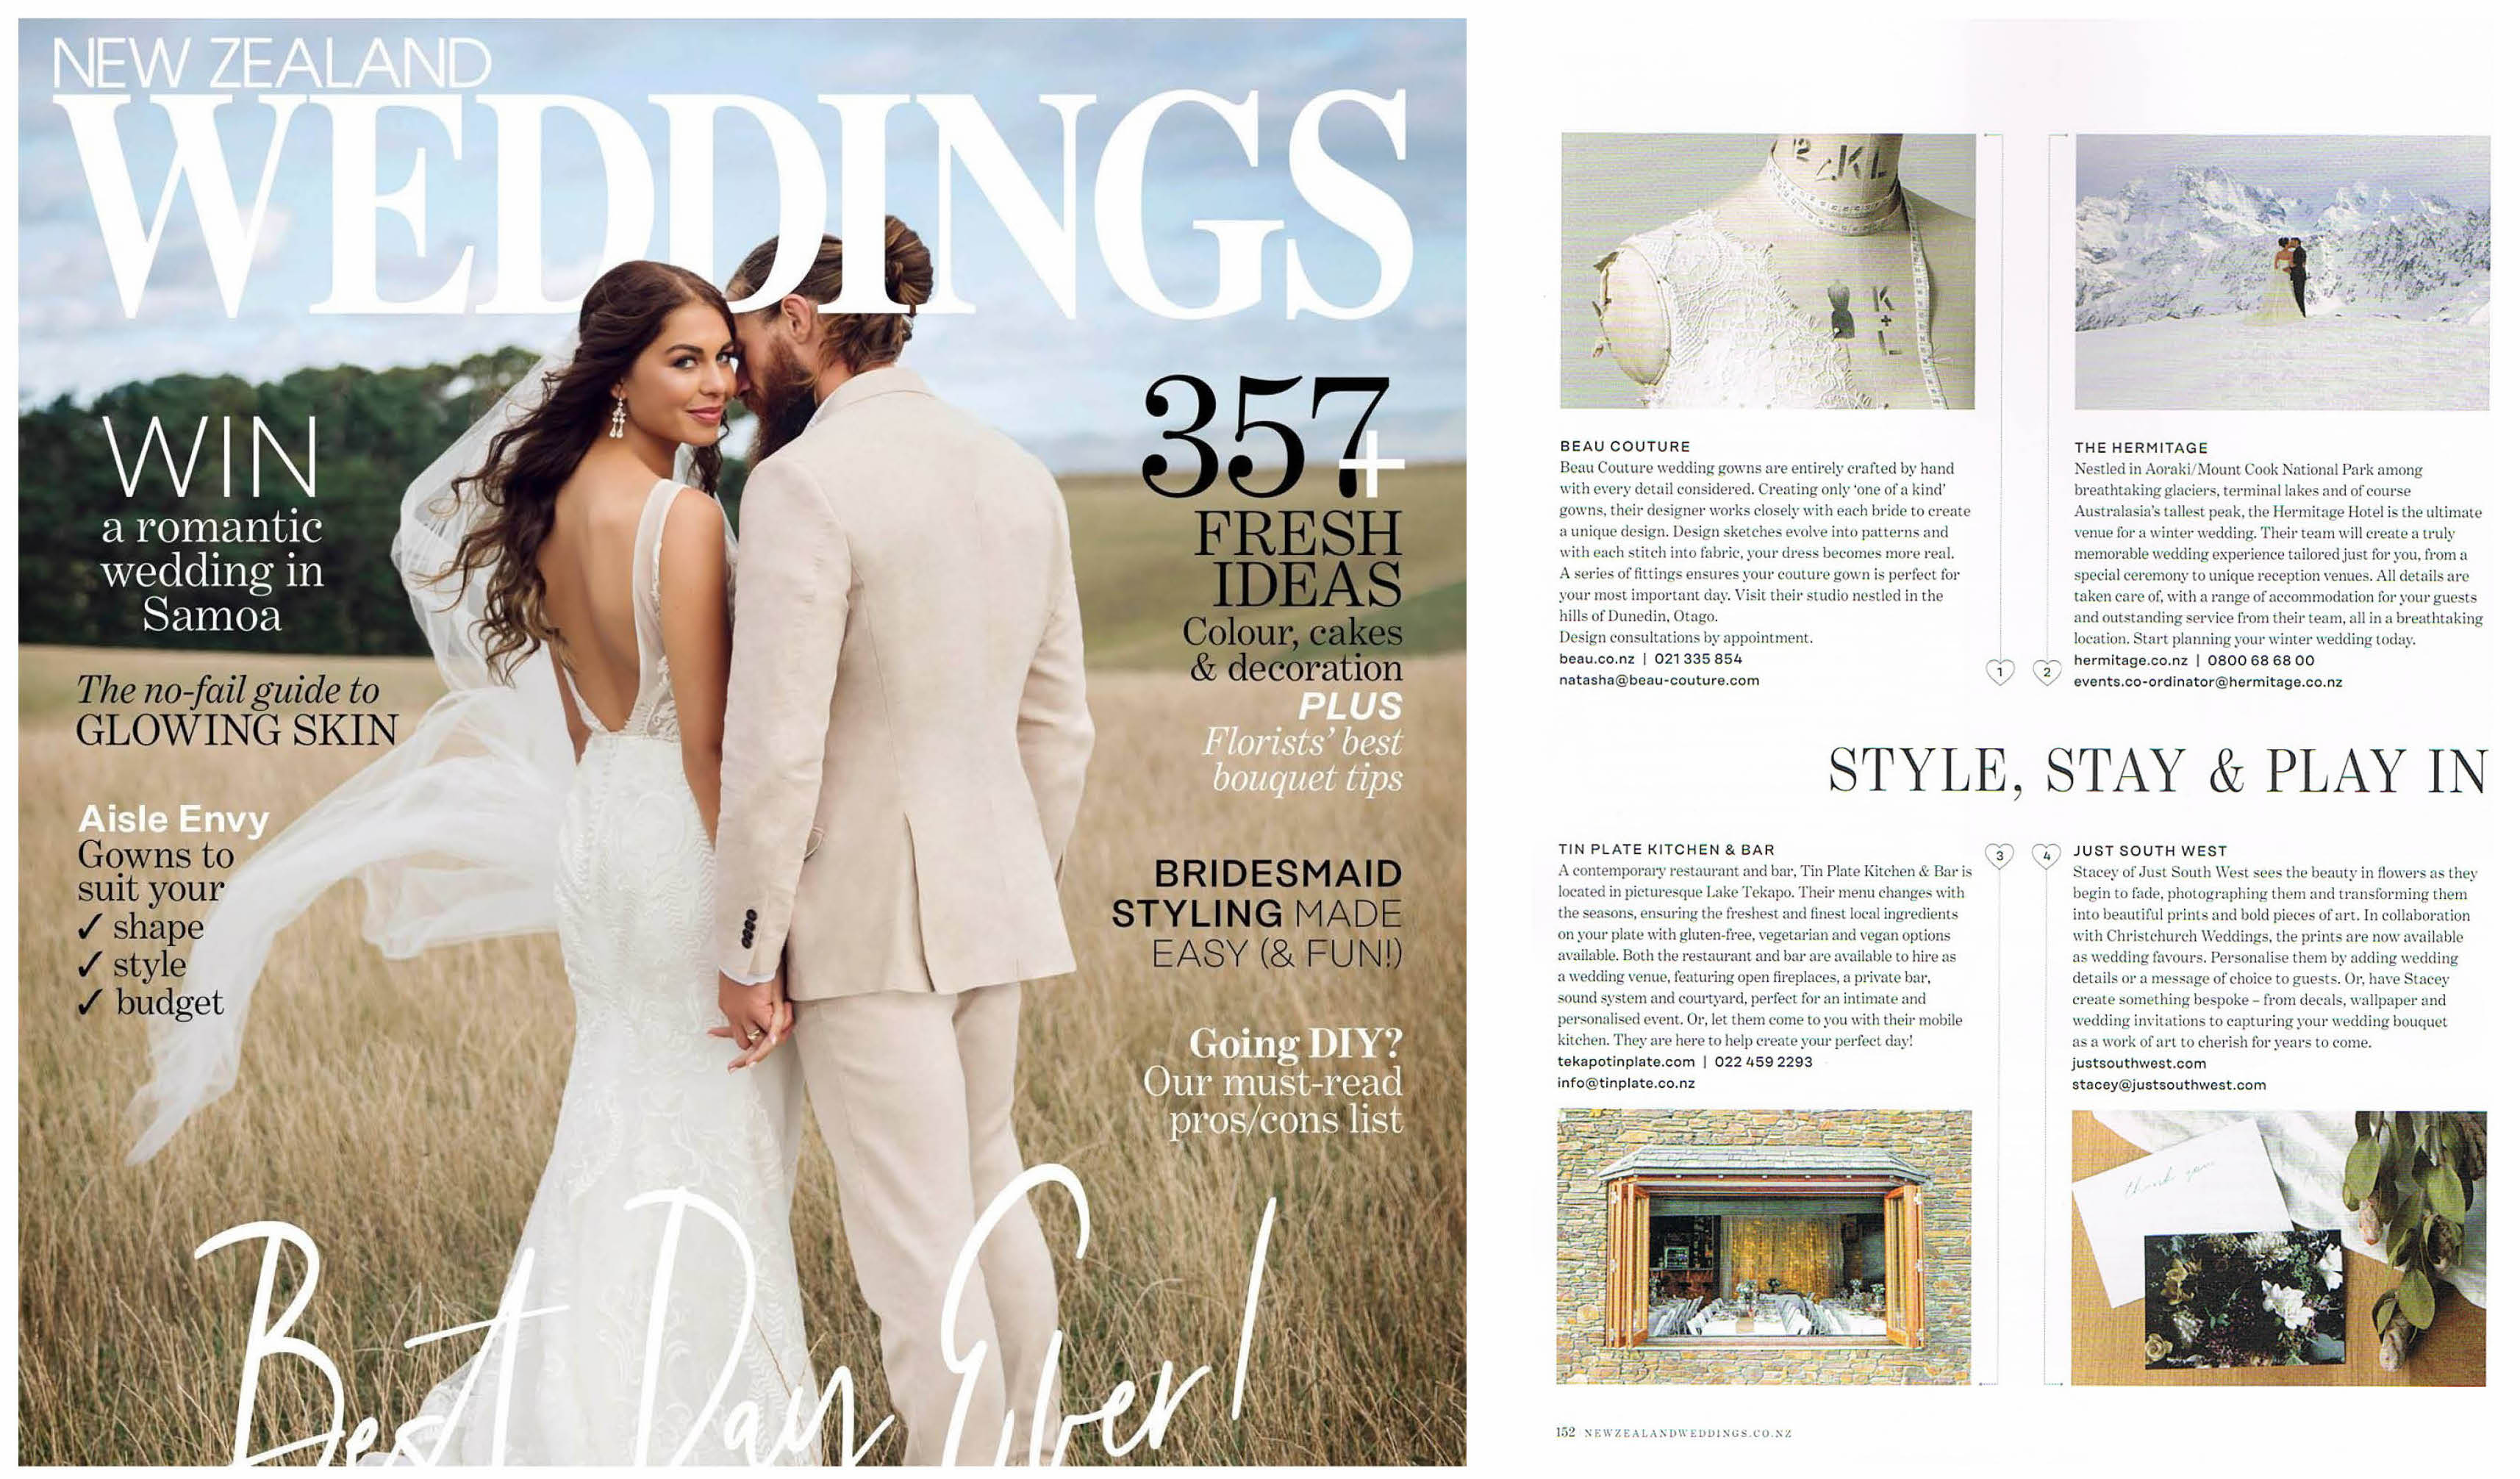 NZ WEDDINGS - WINTER ISSUE - 2018